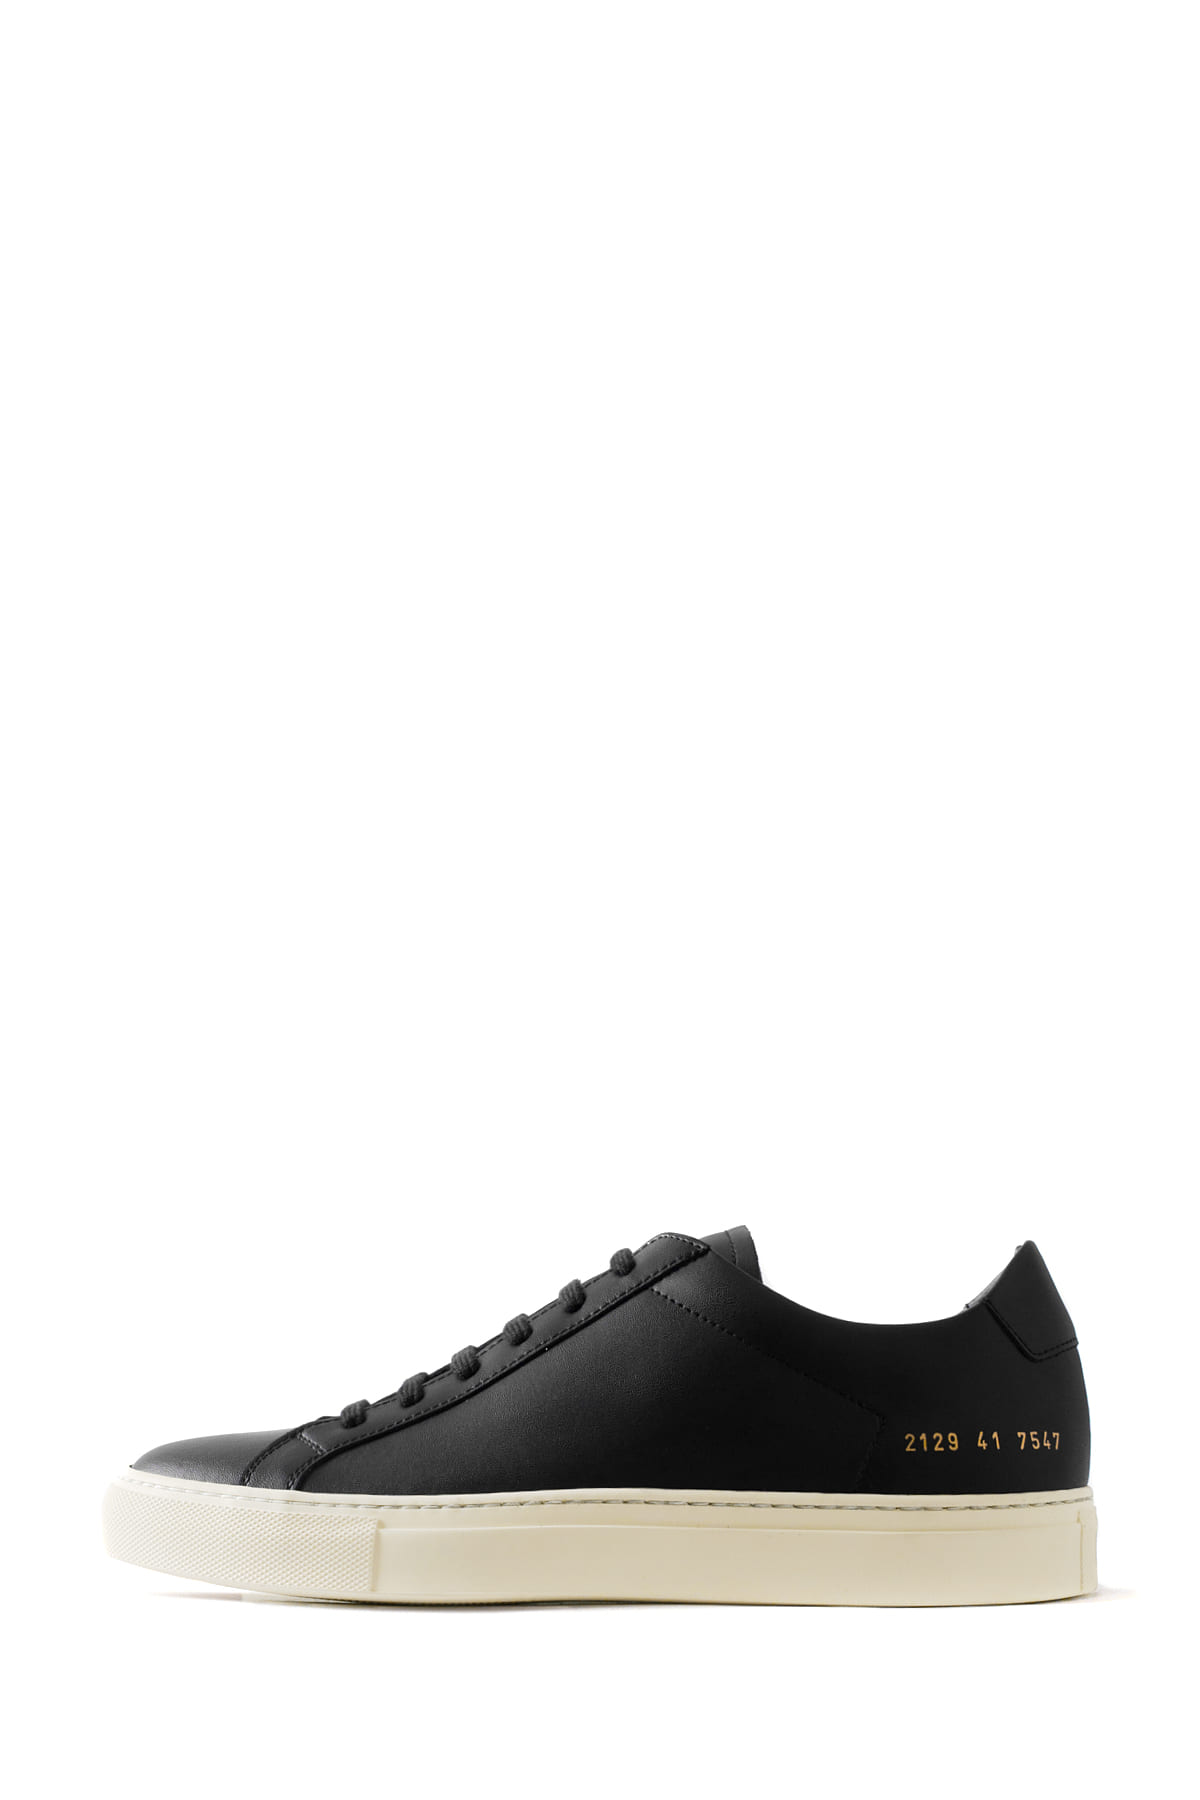 Common Projects :  Achilles Retro Low 2129 (Black)